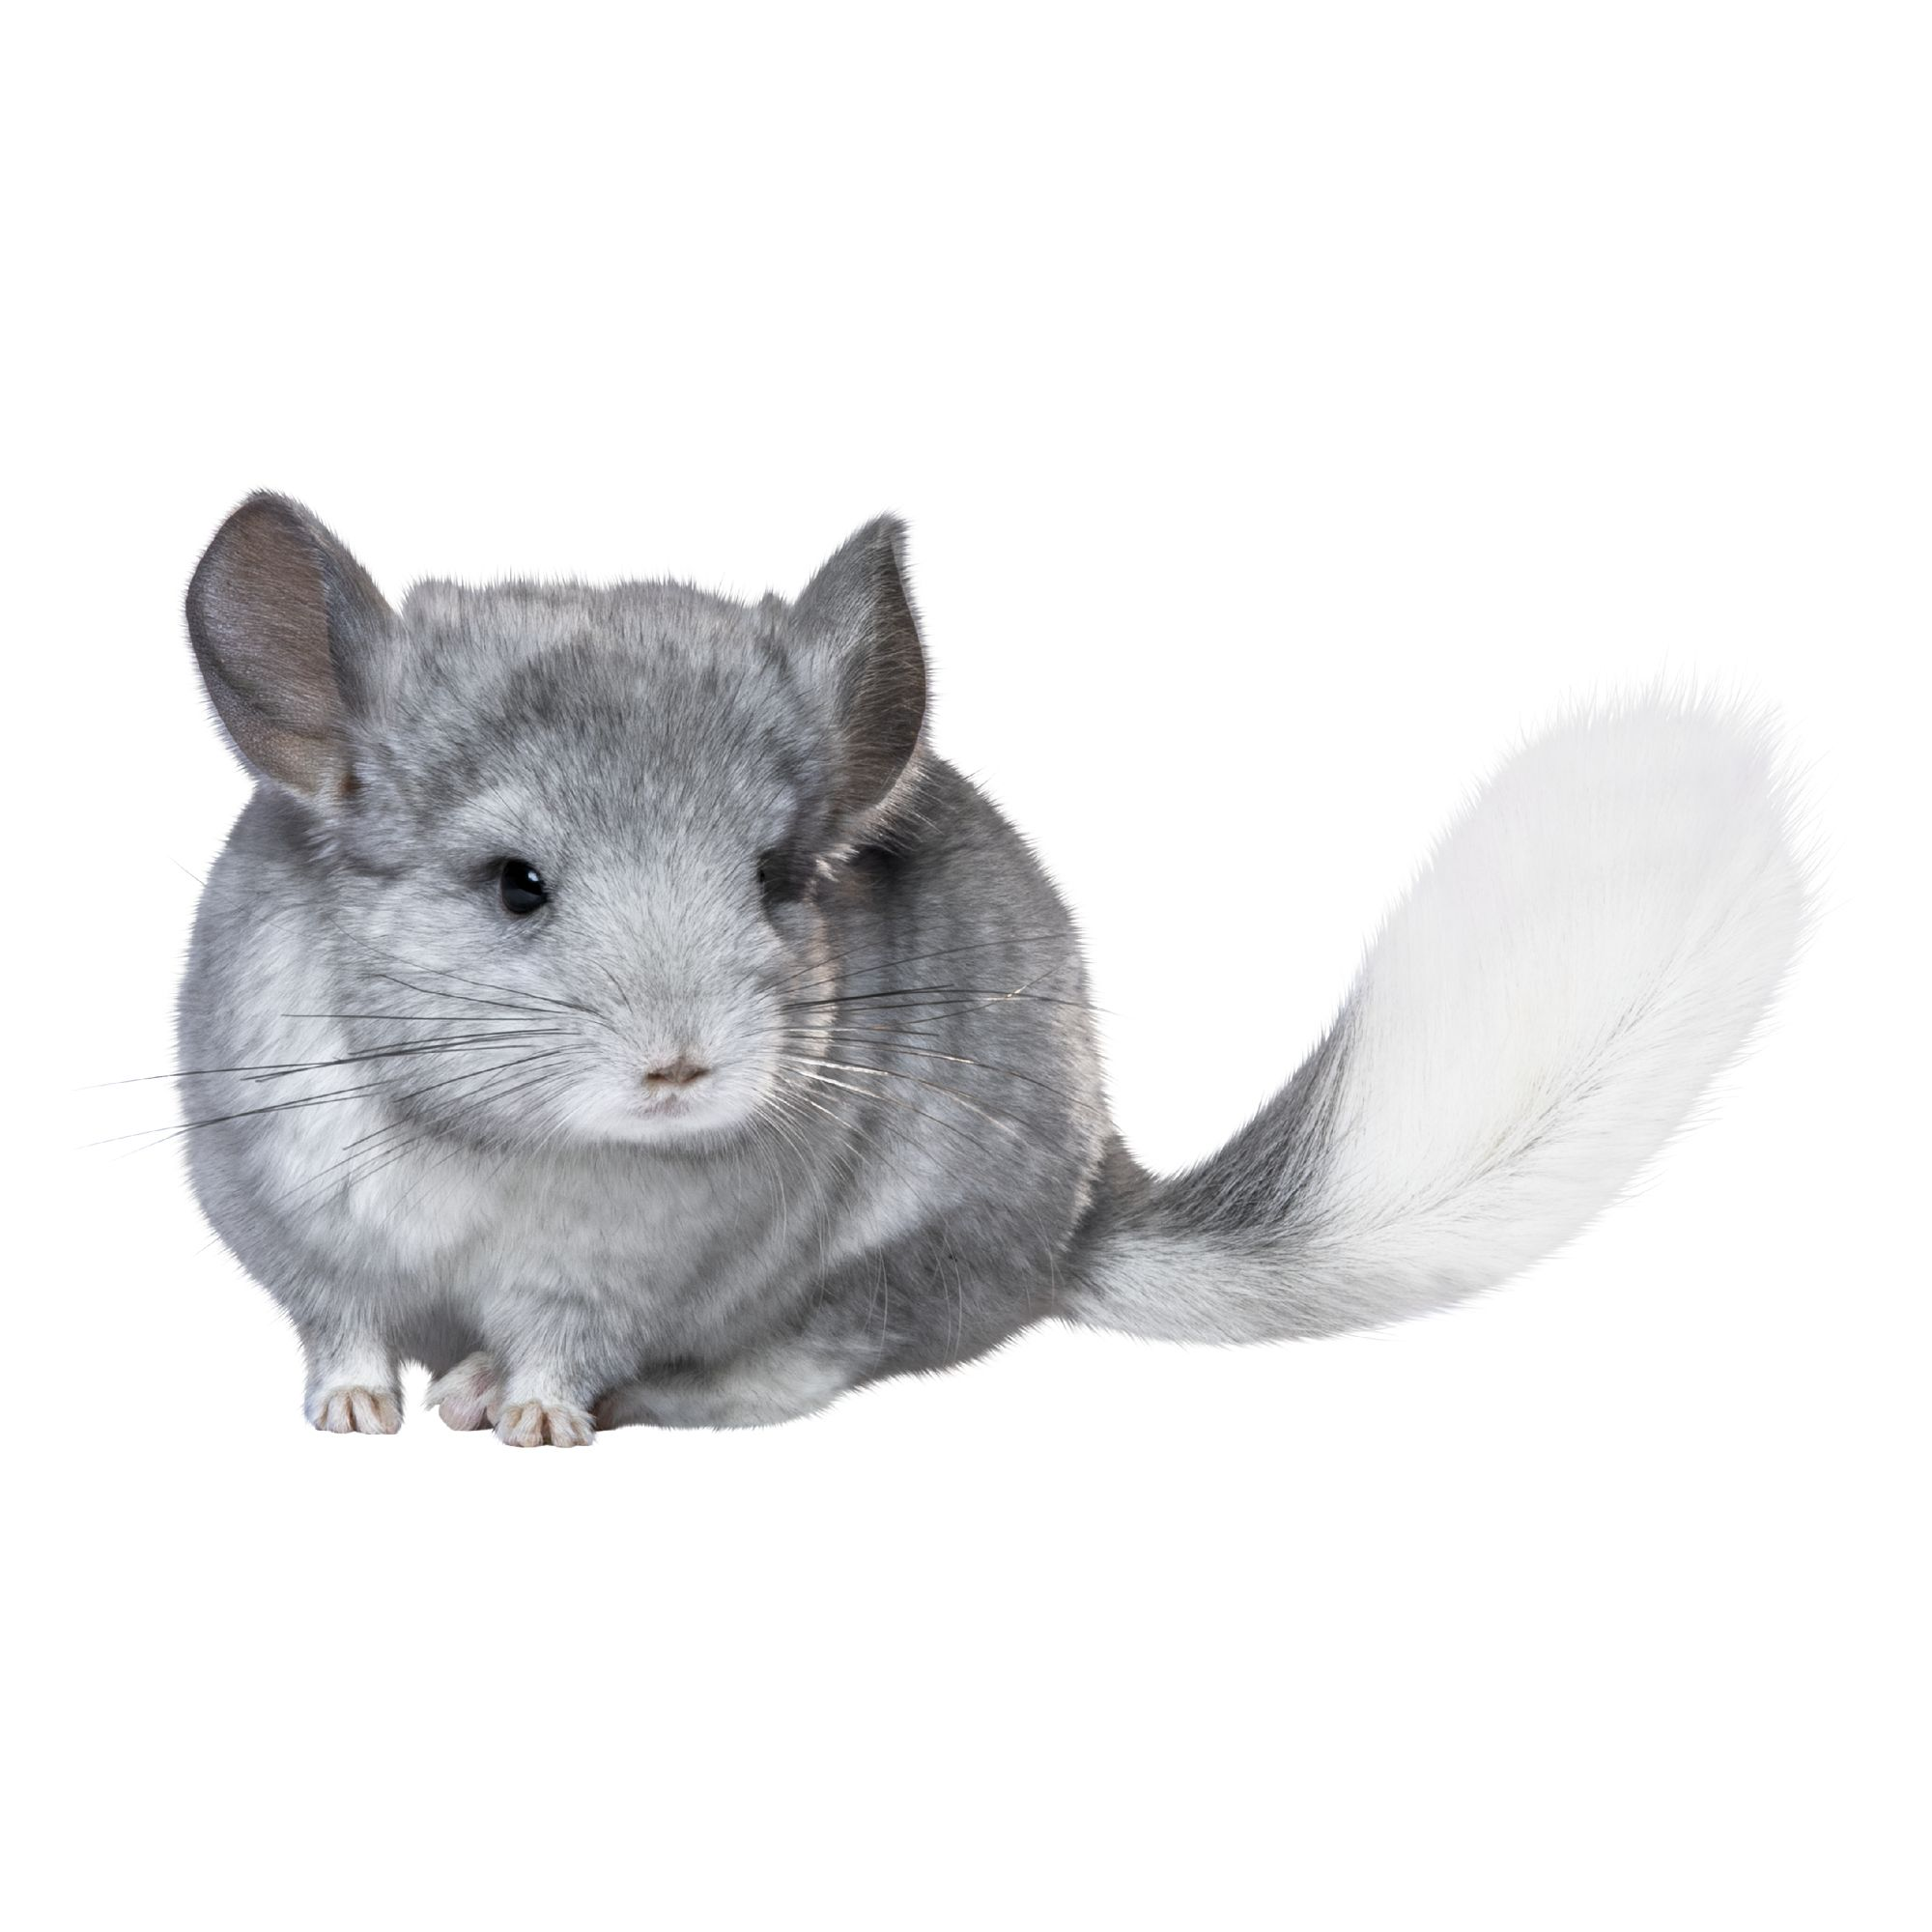 Female Chinchilla For Sale Live Small Pets Petsmart